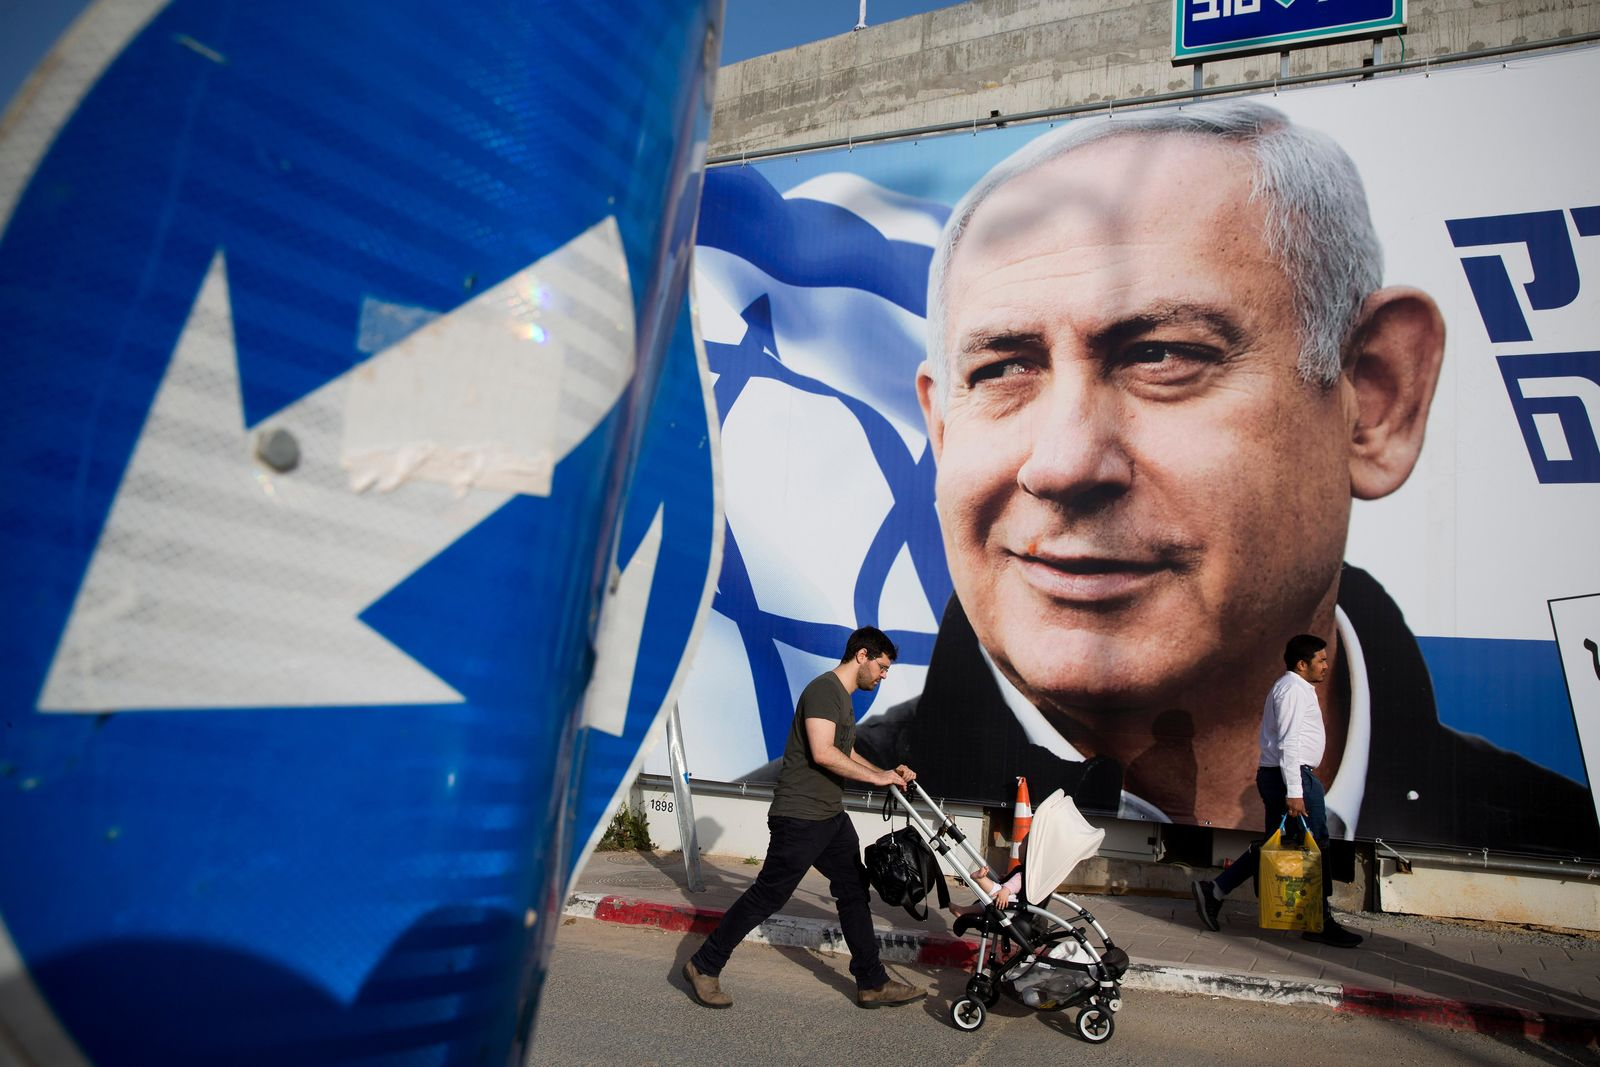 FILE - In this April 7, 2019 file photo, a man walks by an election campaign billboard showing Israel's Prime Minister Benjamin Netanyahu, the Likud party leader, in Tel Aviv, Israel. (AP Photo/Oded Balilty, File)